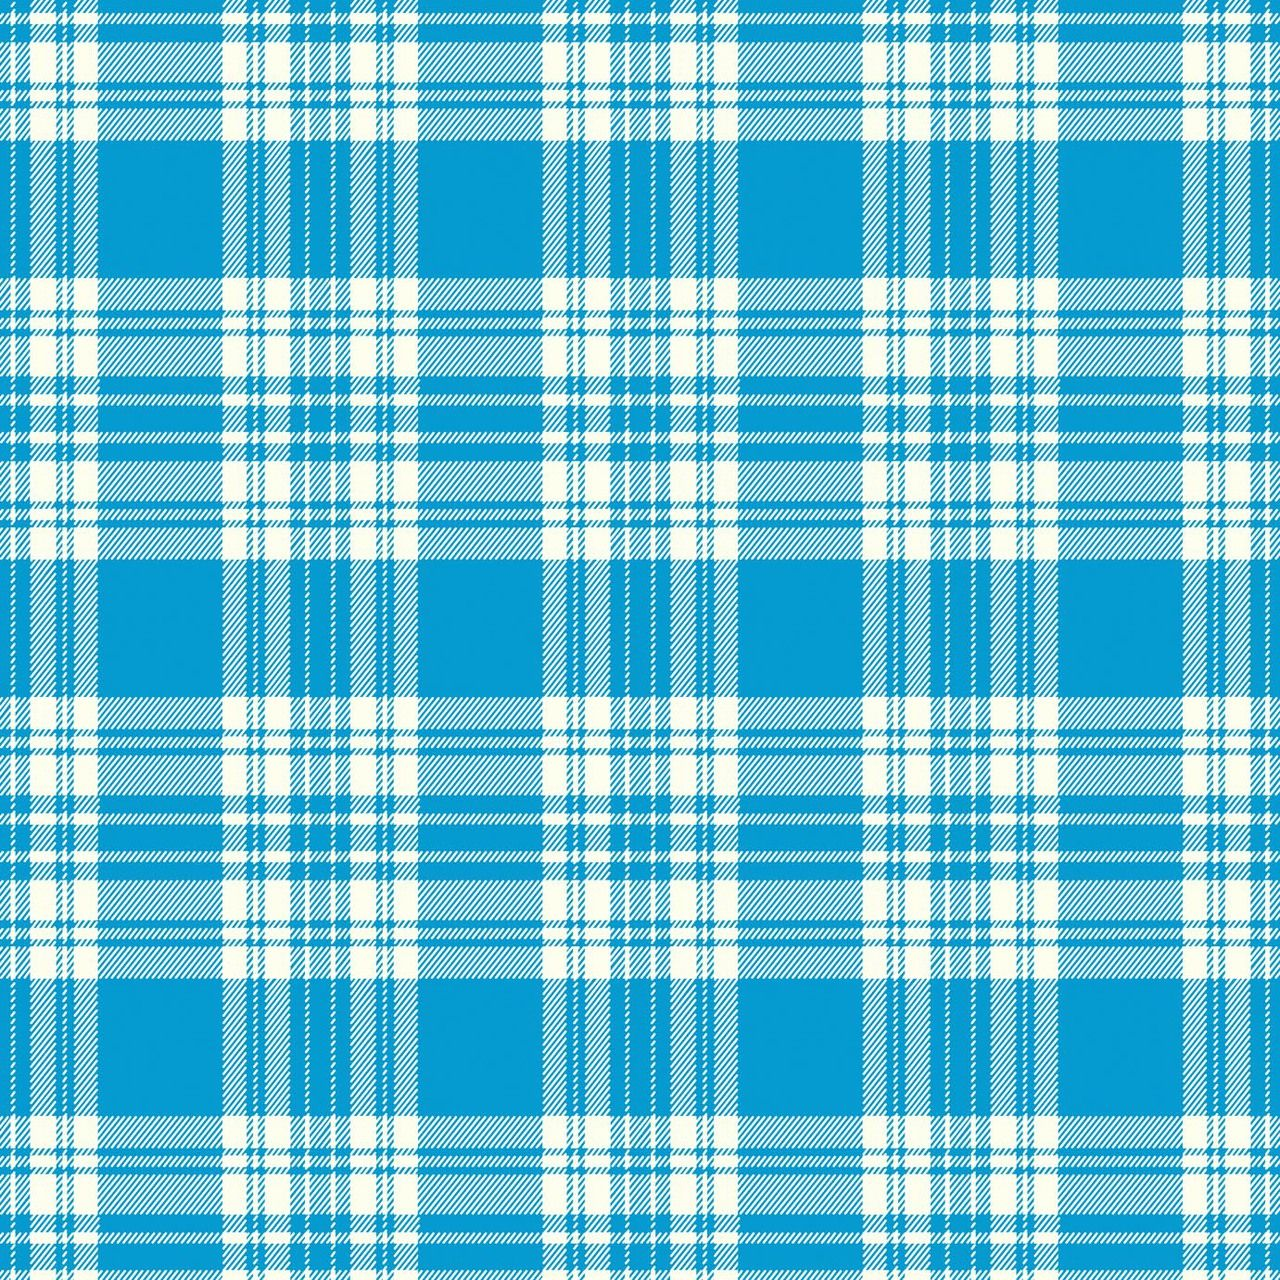 Kilt Mini (Caribe) - Plaid Fabric design to custom print for home decor, upholstery, and apparel. Pick the ground fabric you need and custom print the designs you want to create the perfect fabric for your next project. https://thetextiledistrict.com #designwithcolor #fabrics #interiordesign #sewing